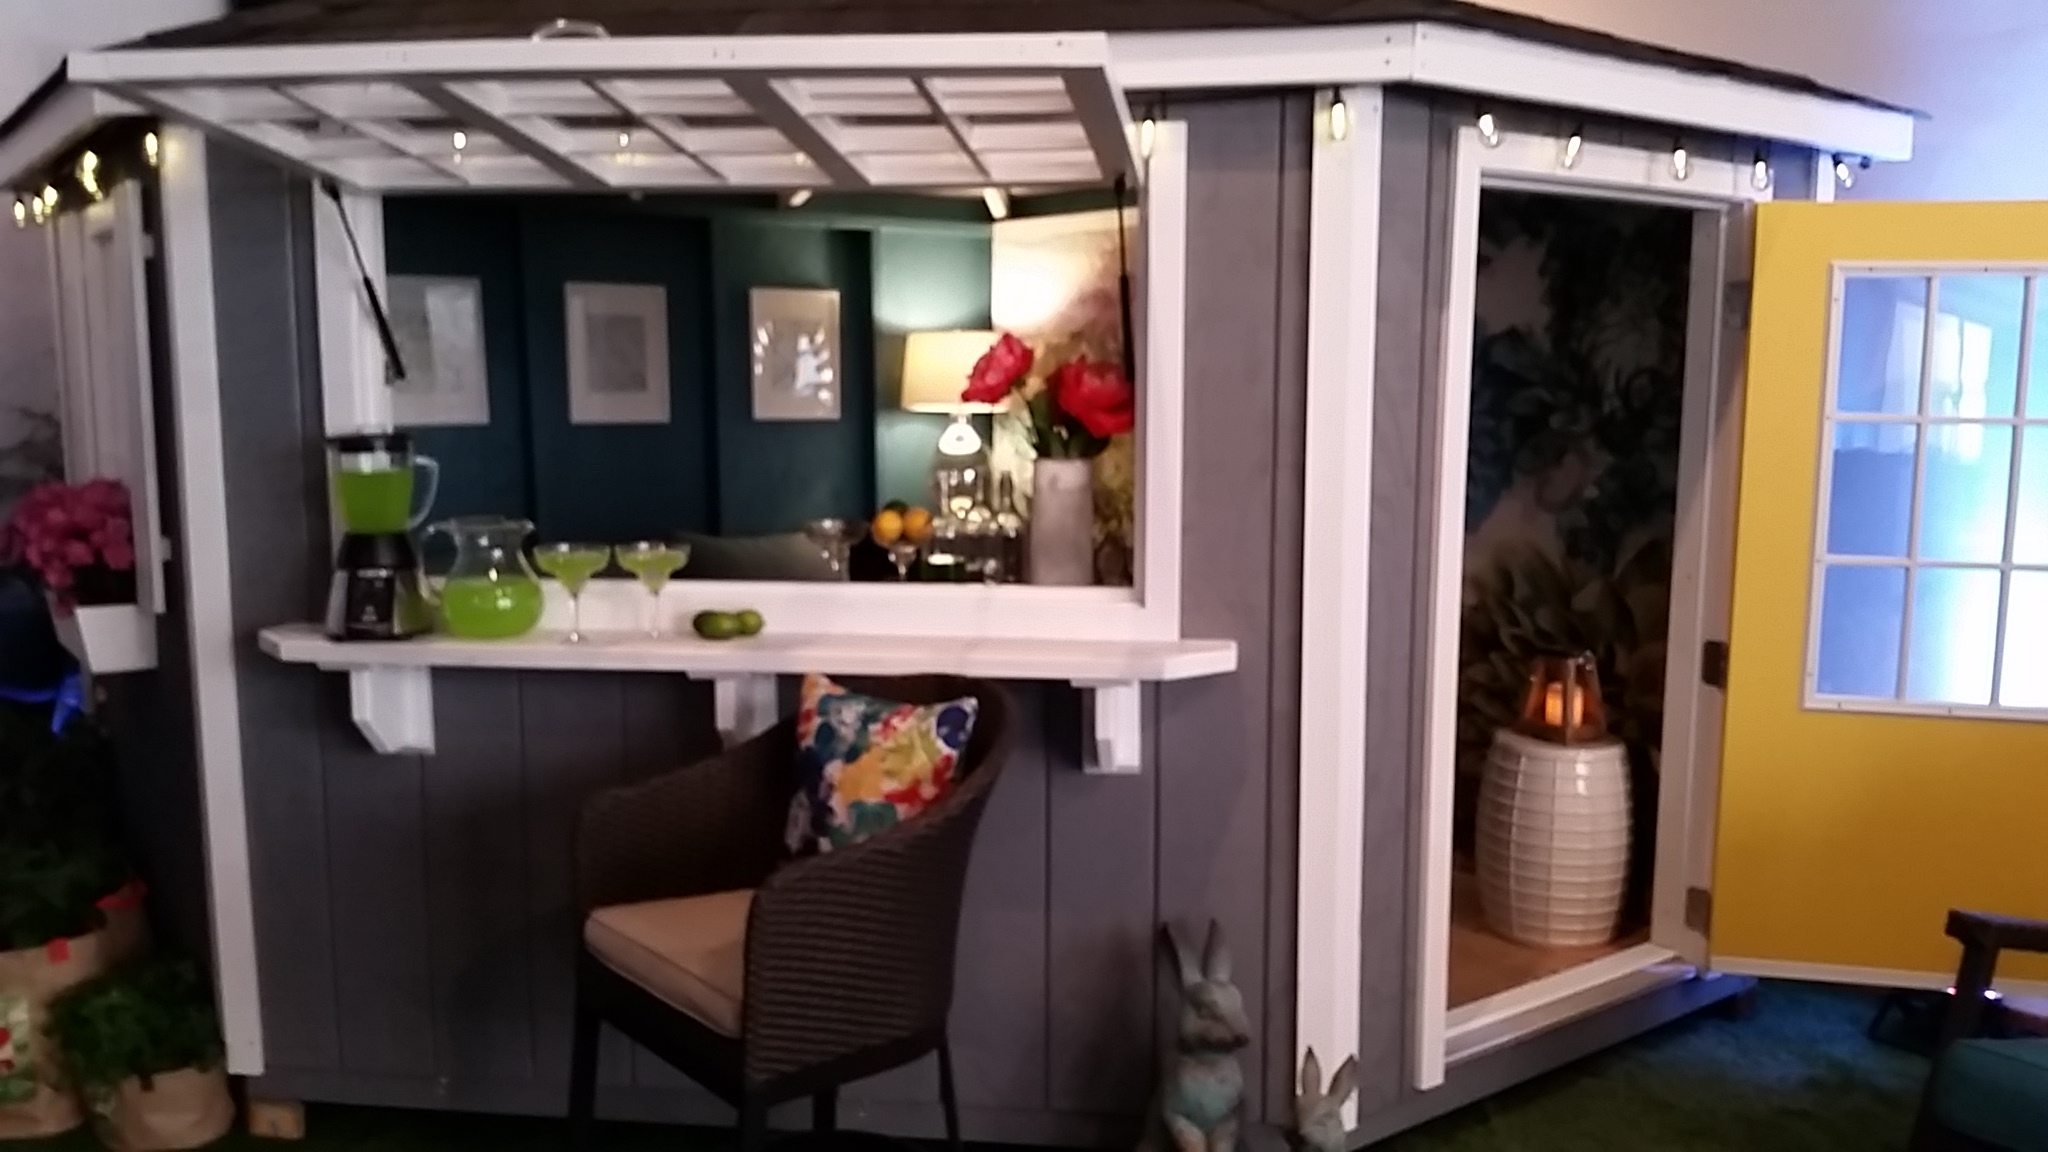 white home gray shades modern s big sliding green window wall wooden buildings glass exterior storage spectacular ideas garden for near of with sheds depot costco frame beauty door outdoor your shed lowes